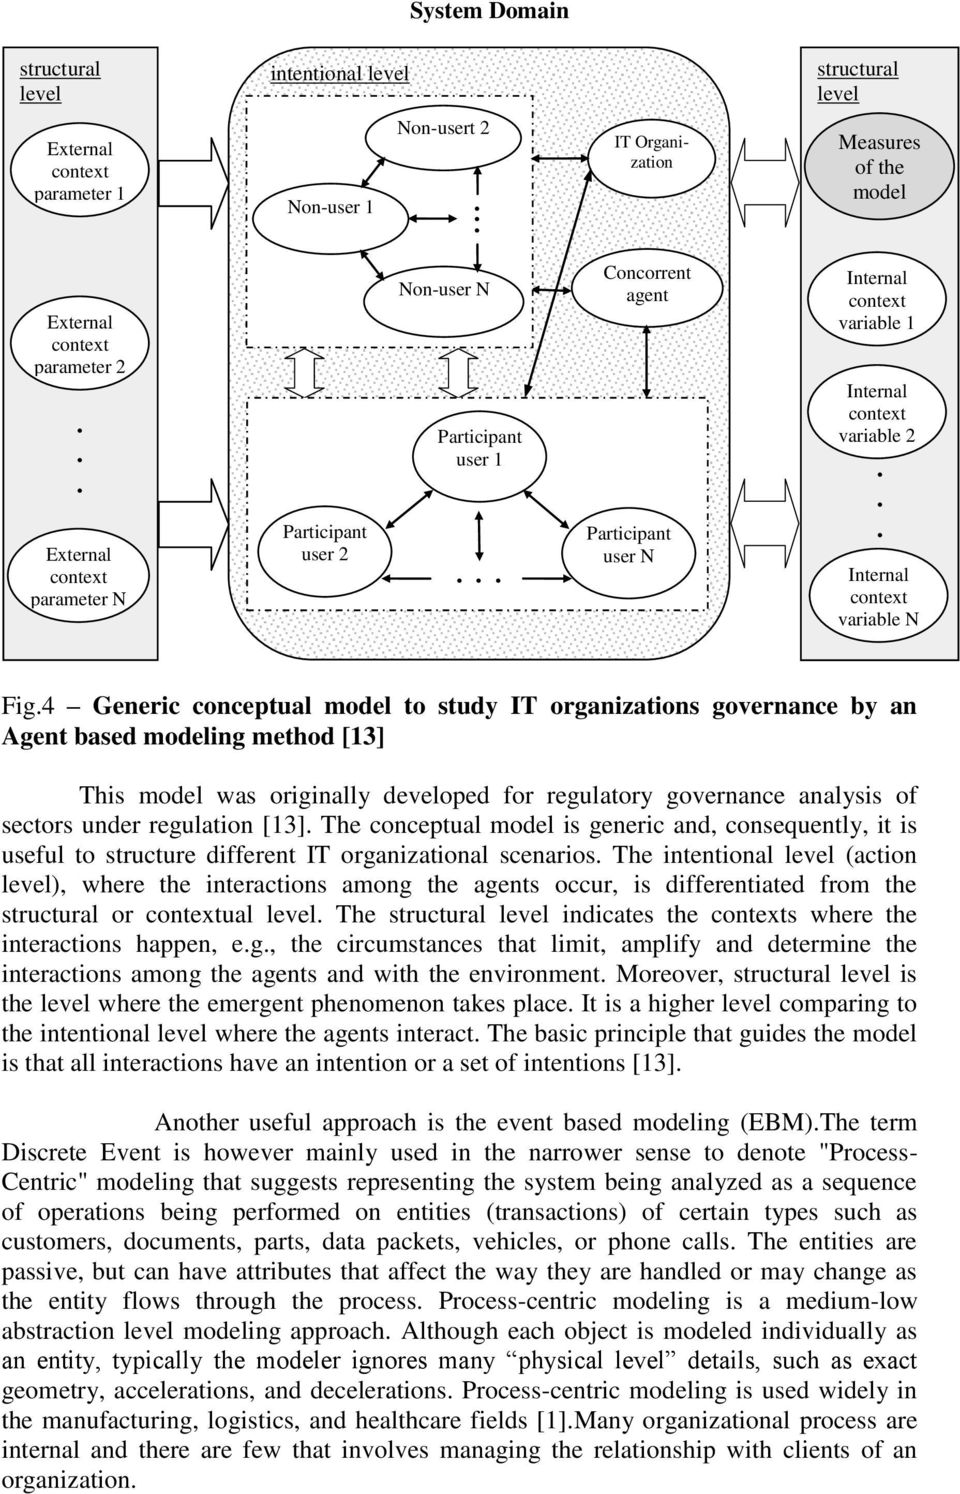 conceptual model to study IT organizations governance by an Agent based modeling method [13] This model was originally developed for regulatory governance analysis of sectors under regulation [13]